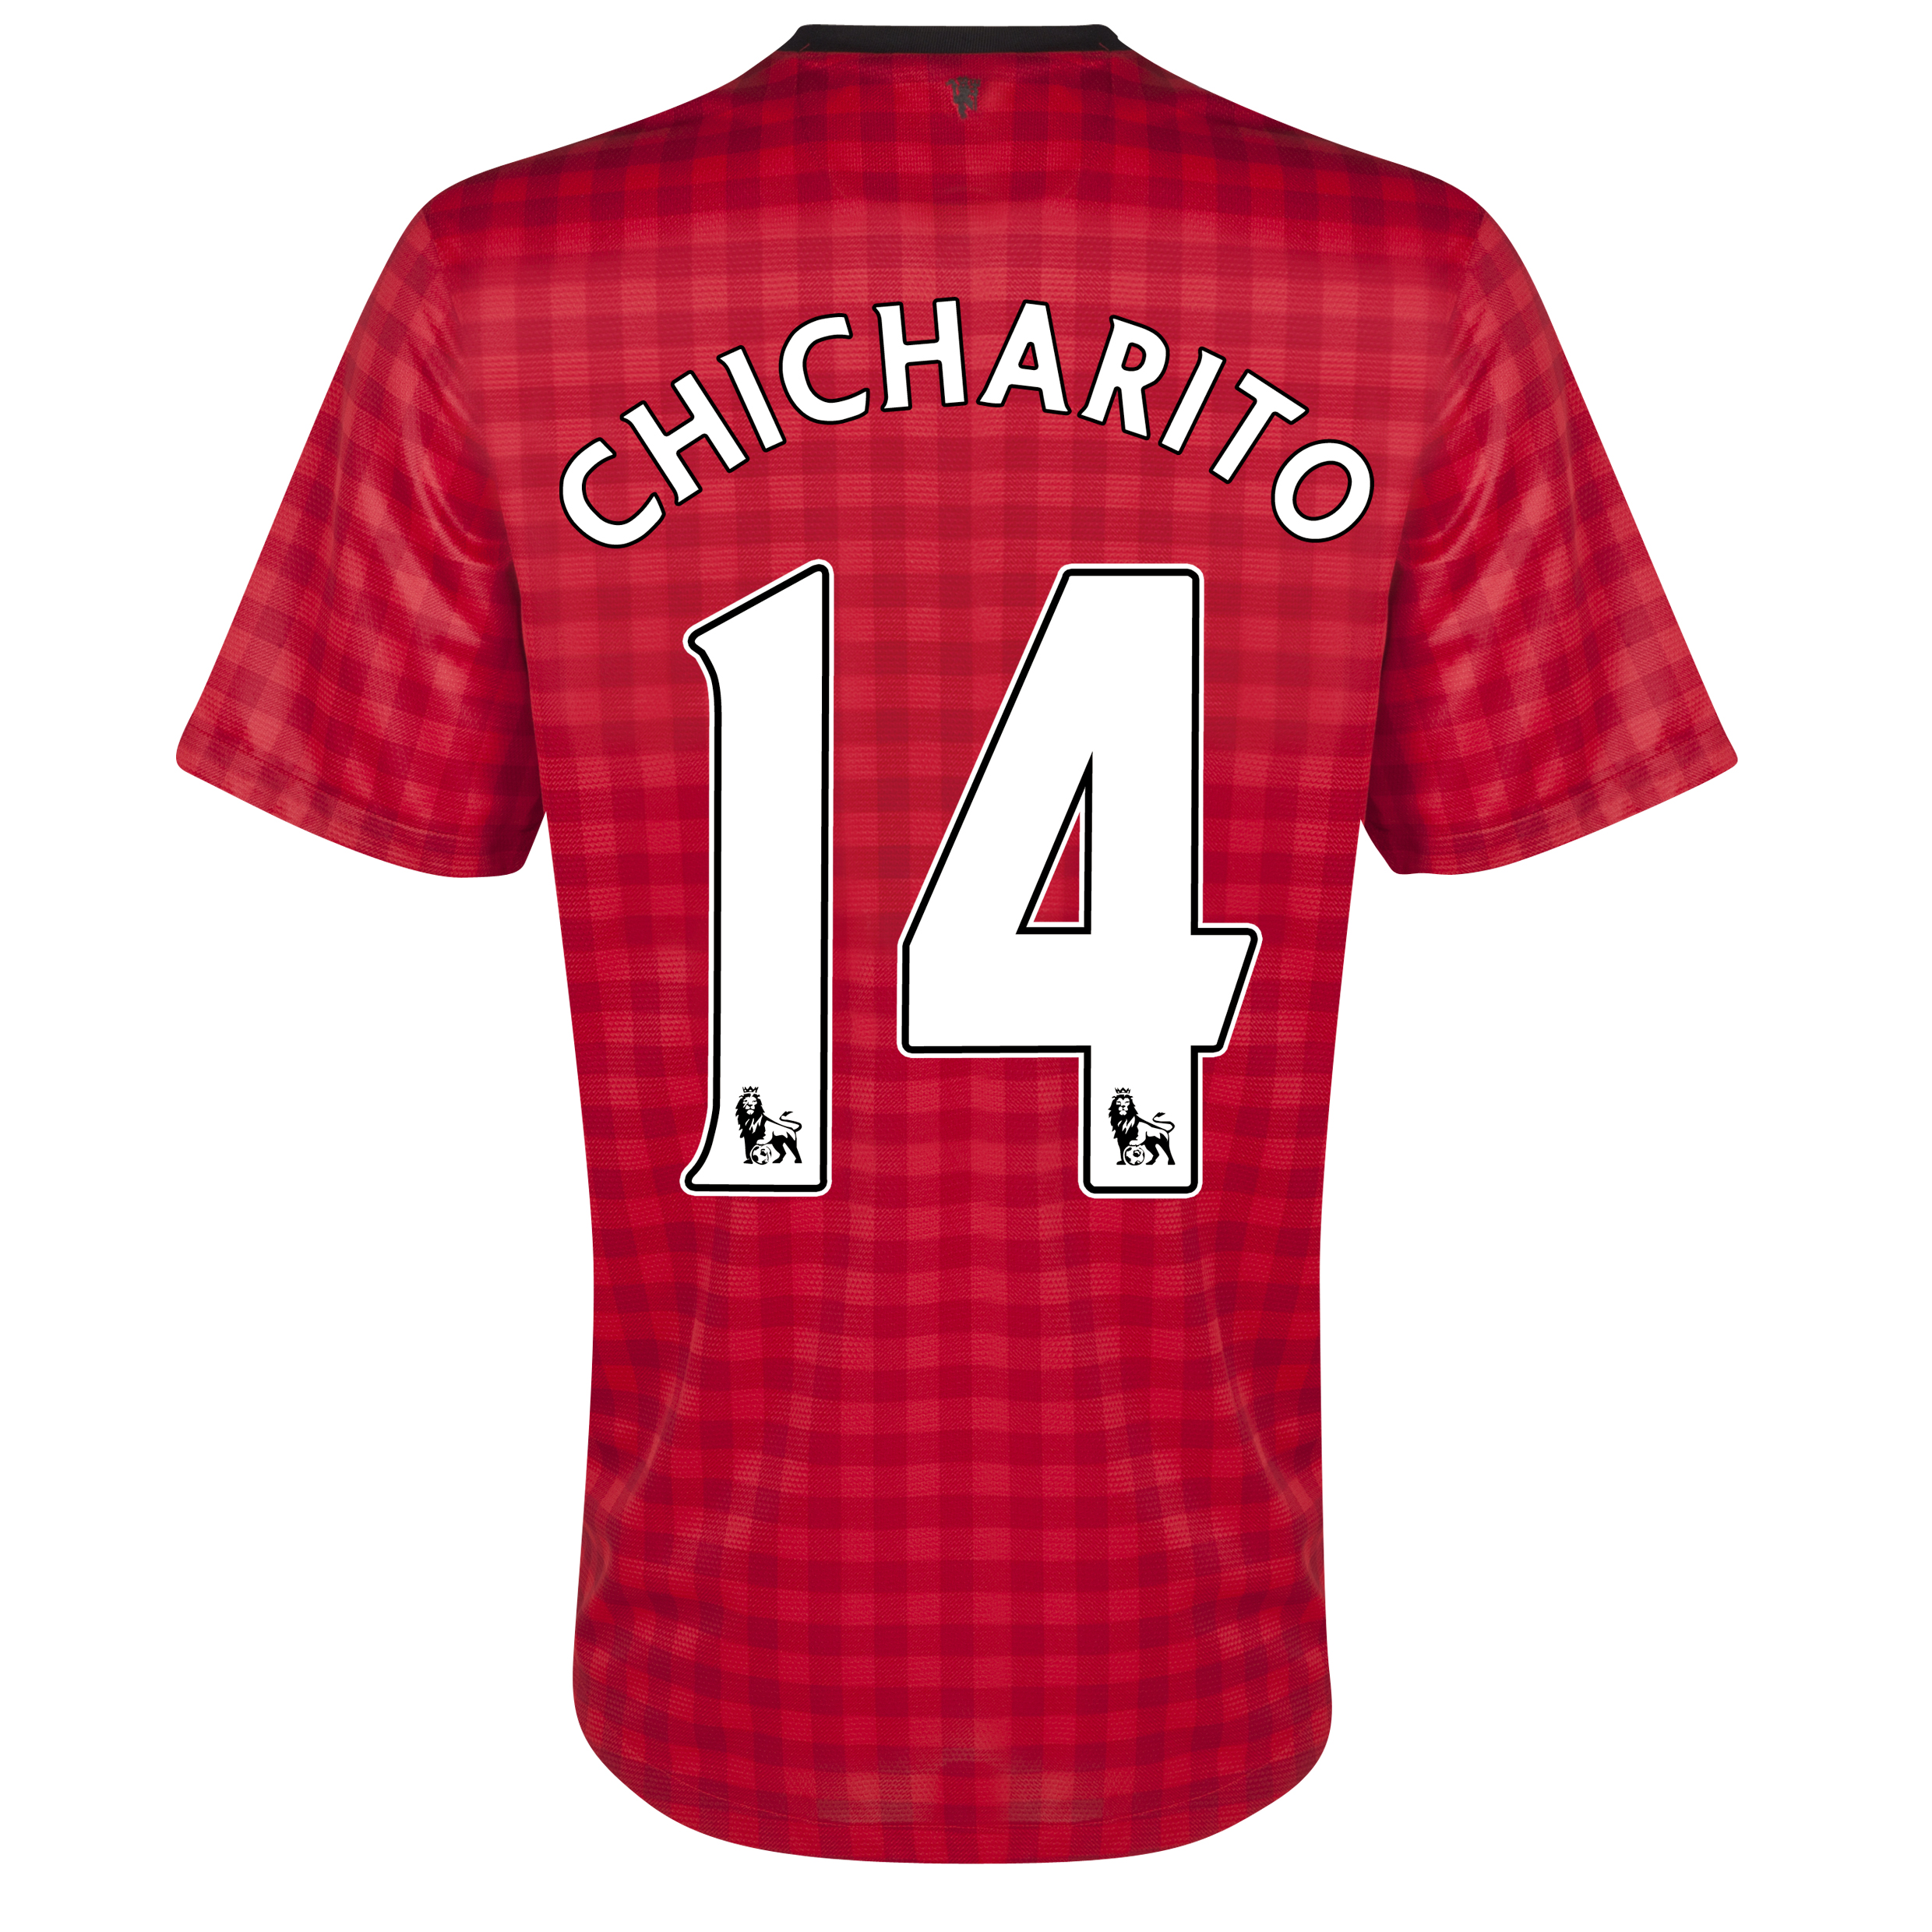 Manchester United Home Shirt 2012/13 with Chicharito 14 printing